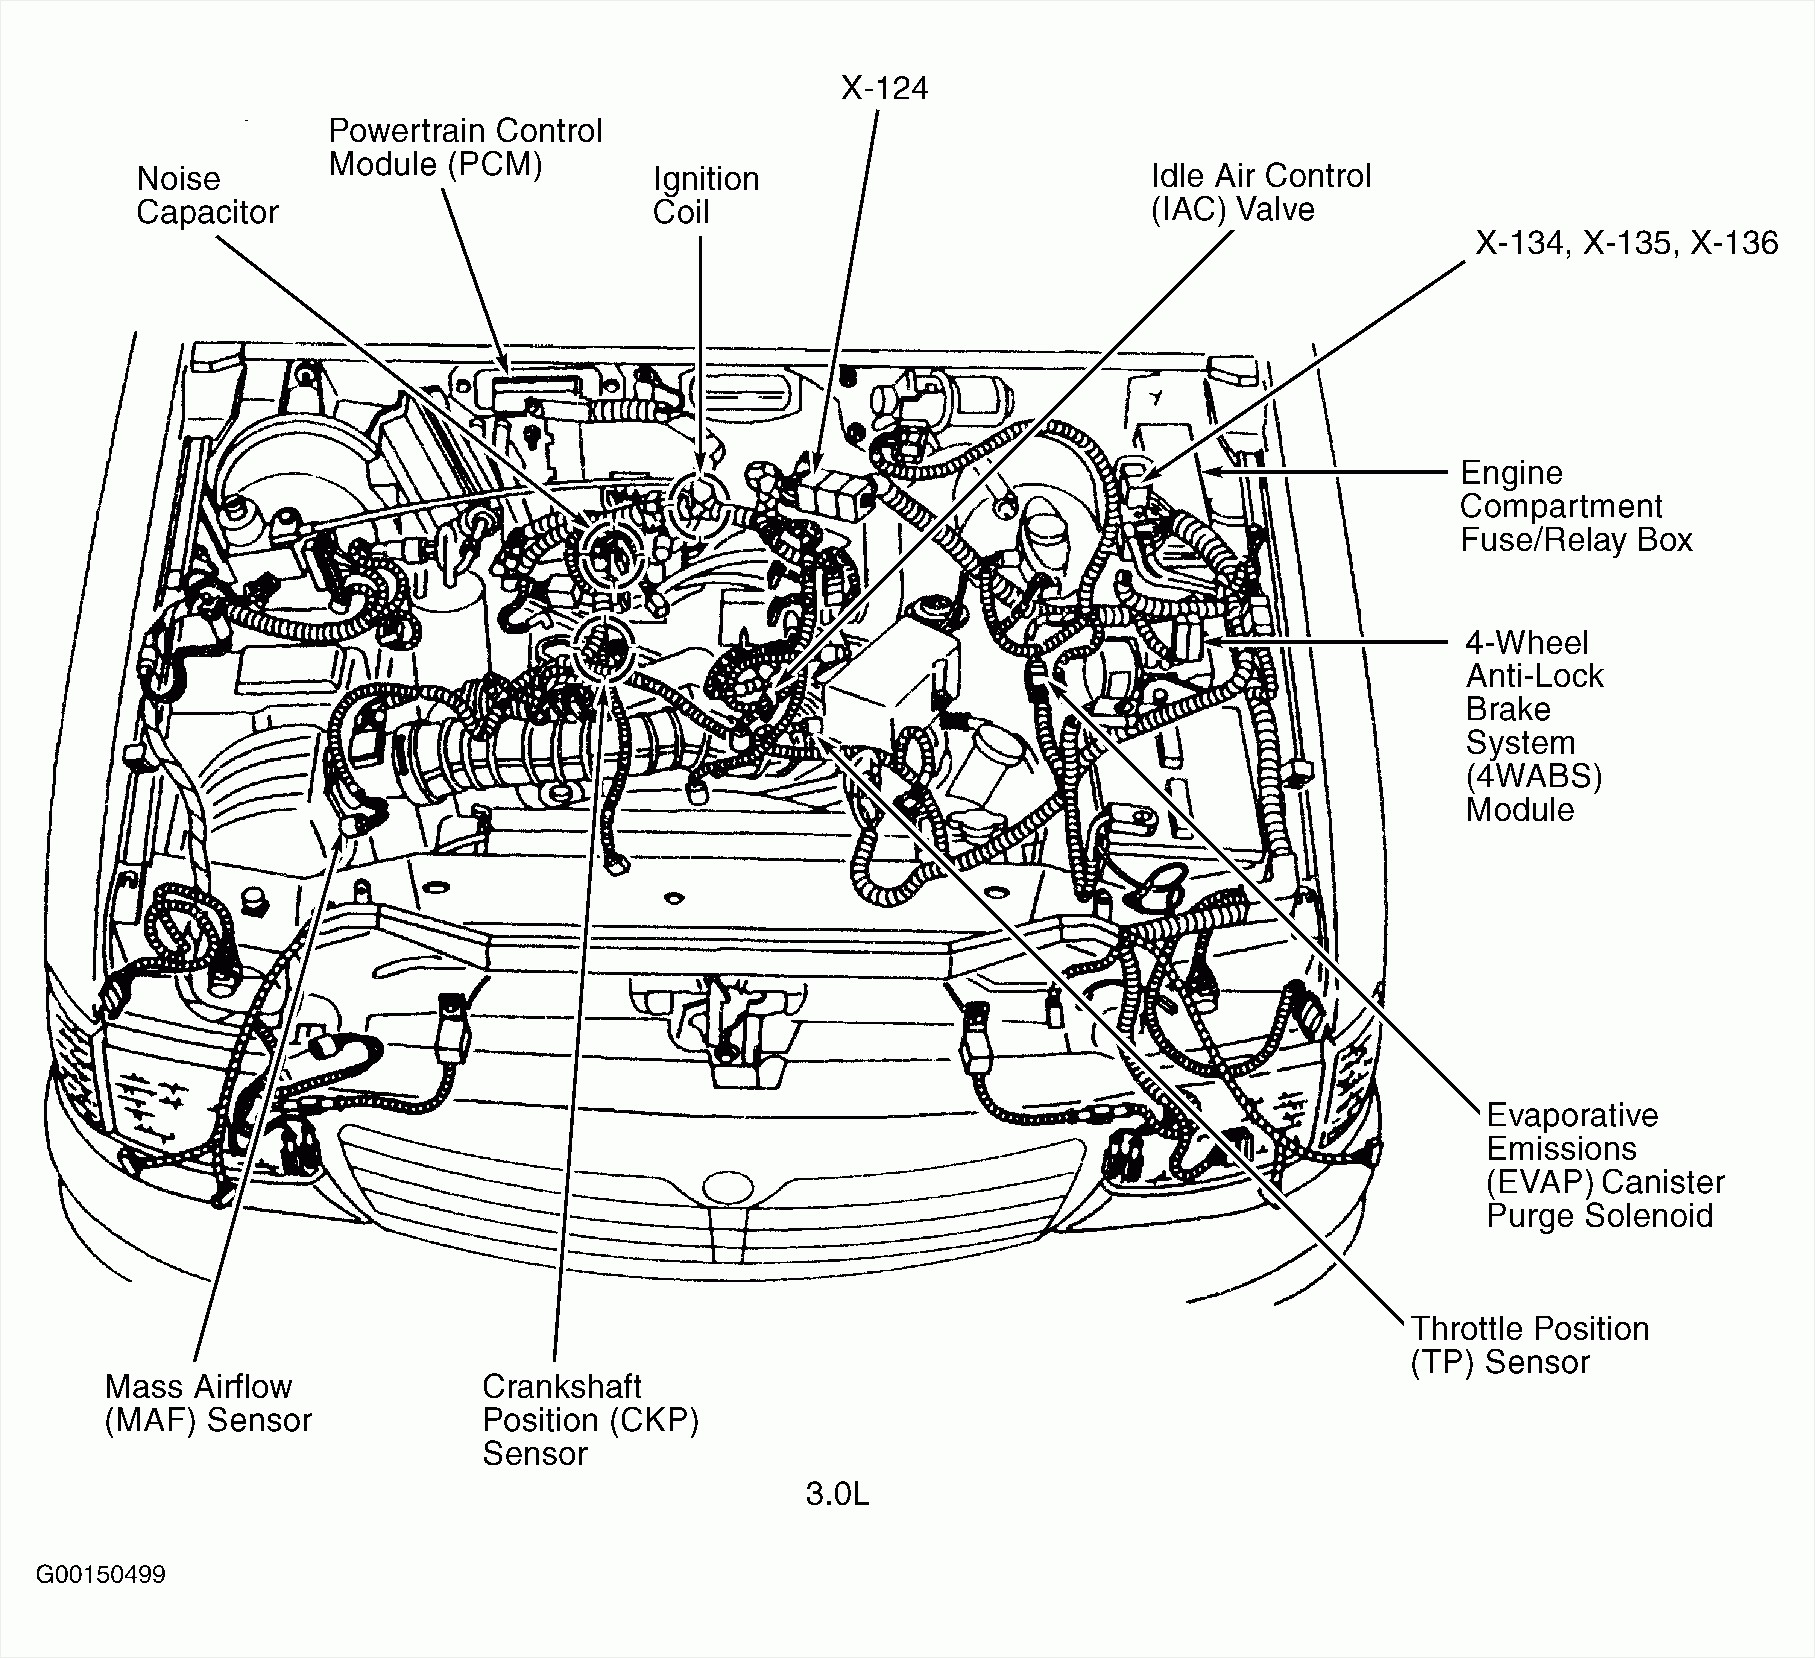 1999 4 6l Mustang Engine Diagram Wiring Libraries Ford M Air Flow Sensor 06 V6 Todays06 Auti Library